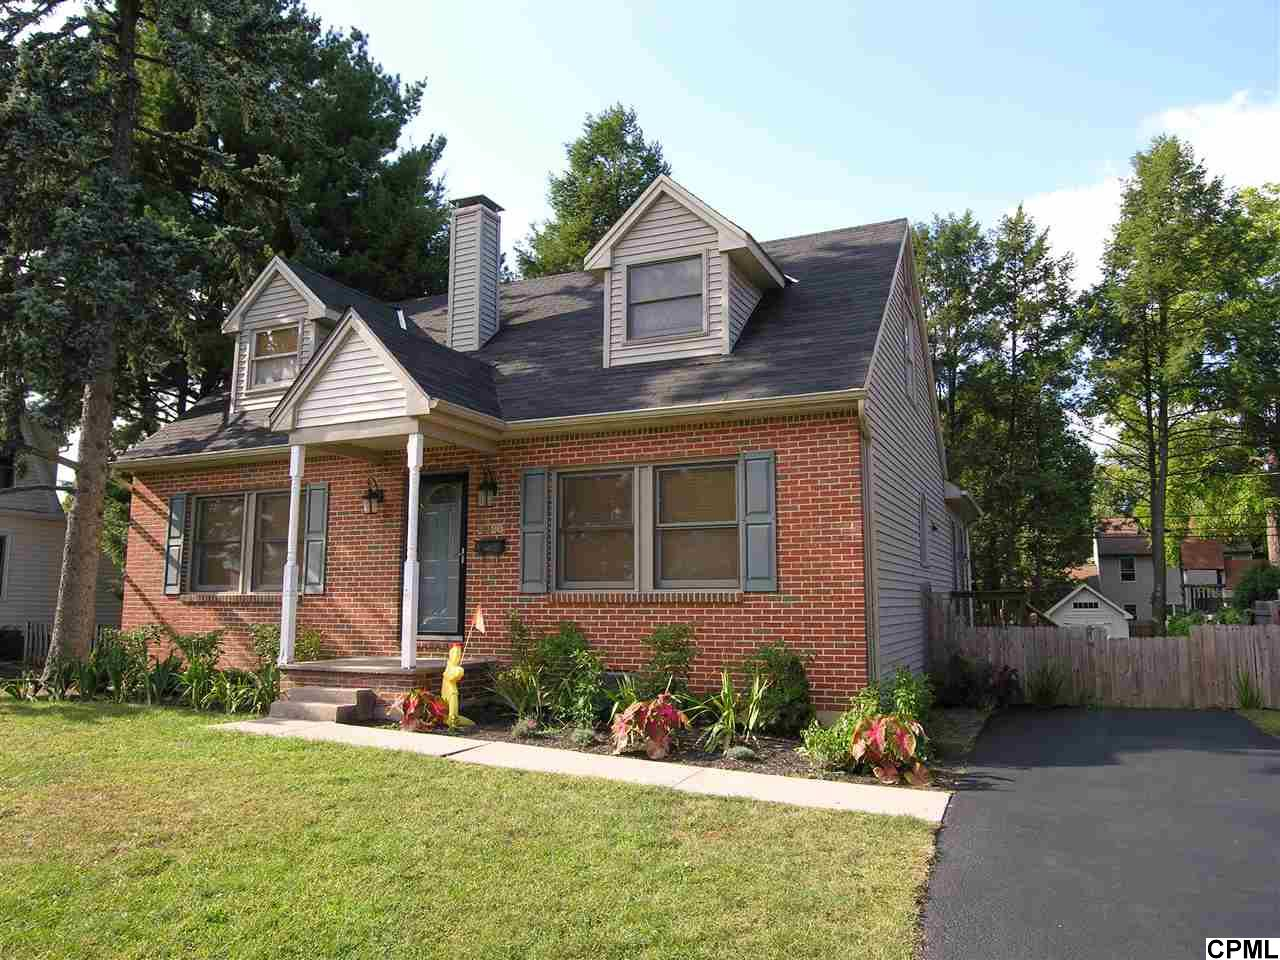 Rental Homes for Rent, ListingId:32371482, location: 3020 Columbia Ave. Camp Hill 17011